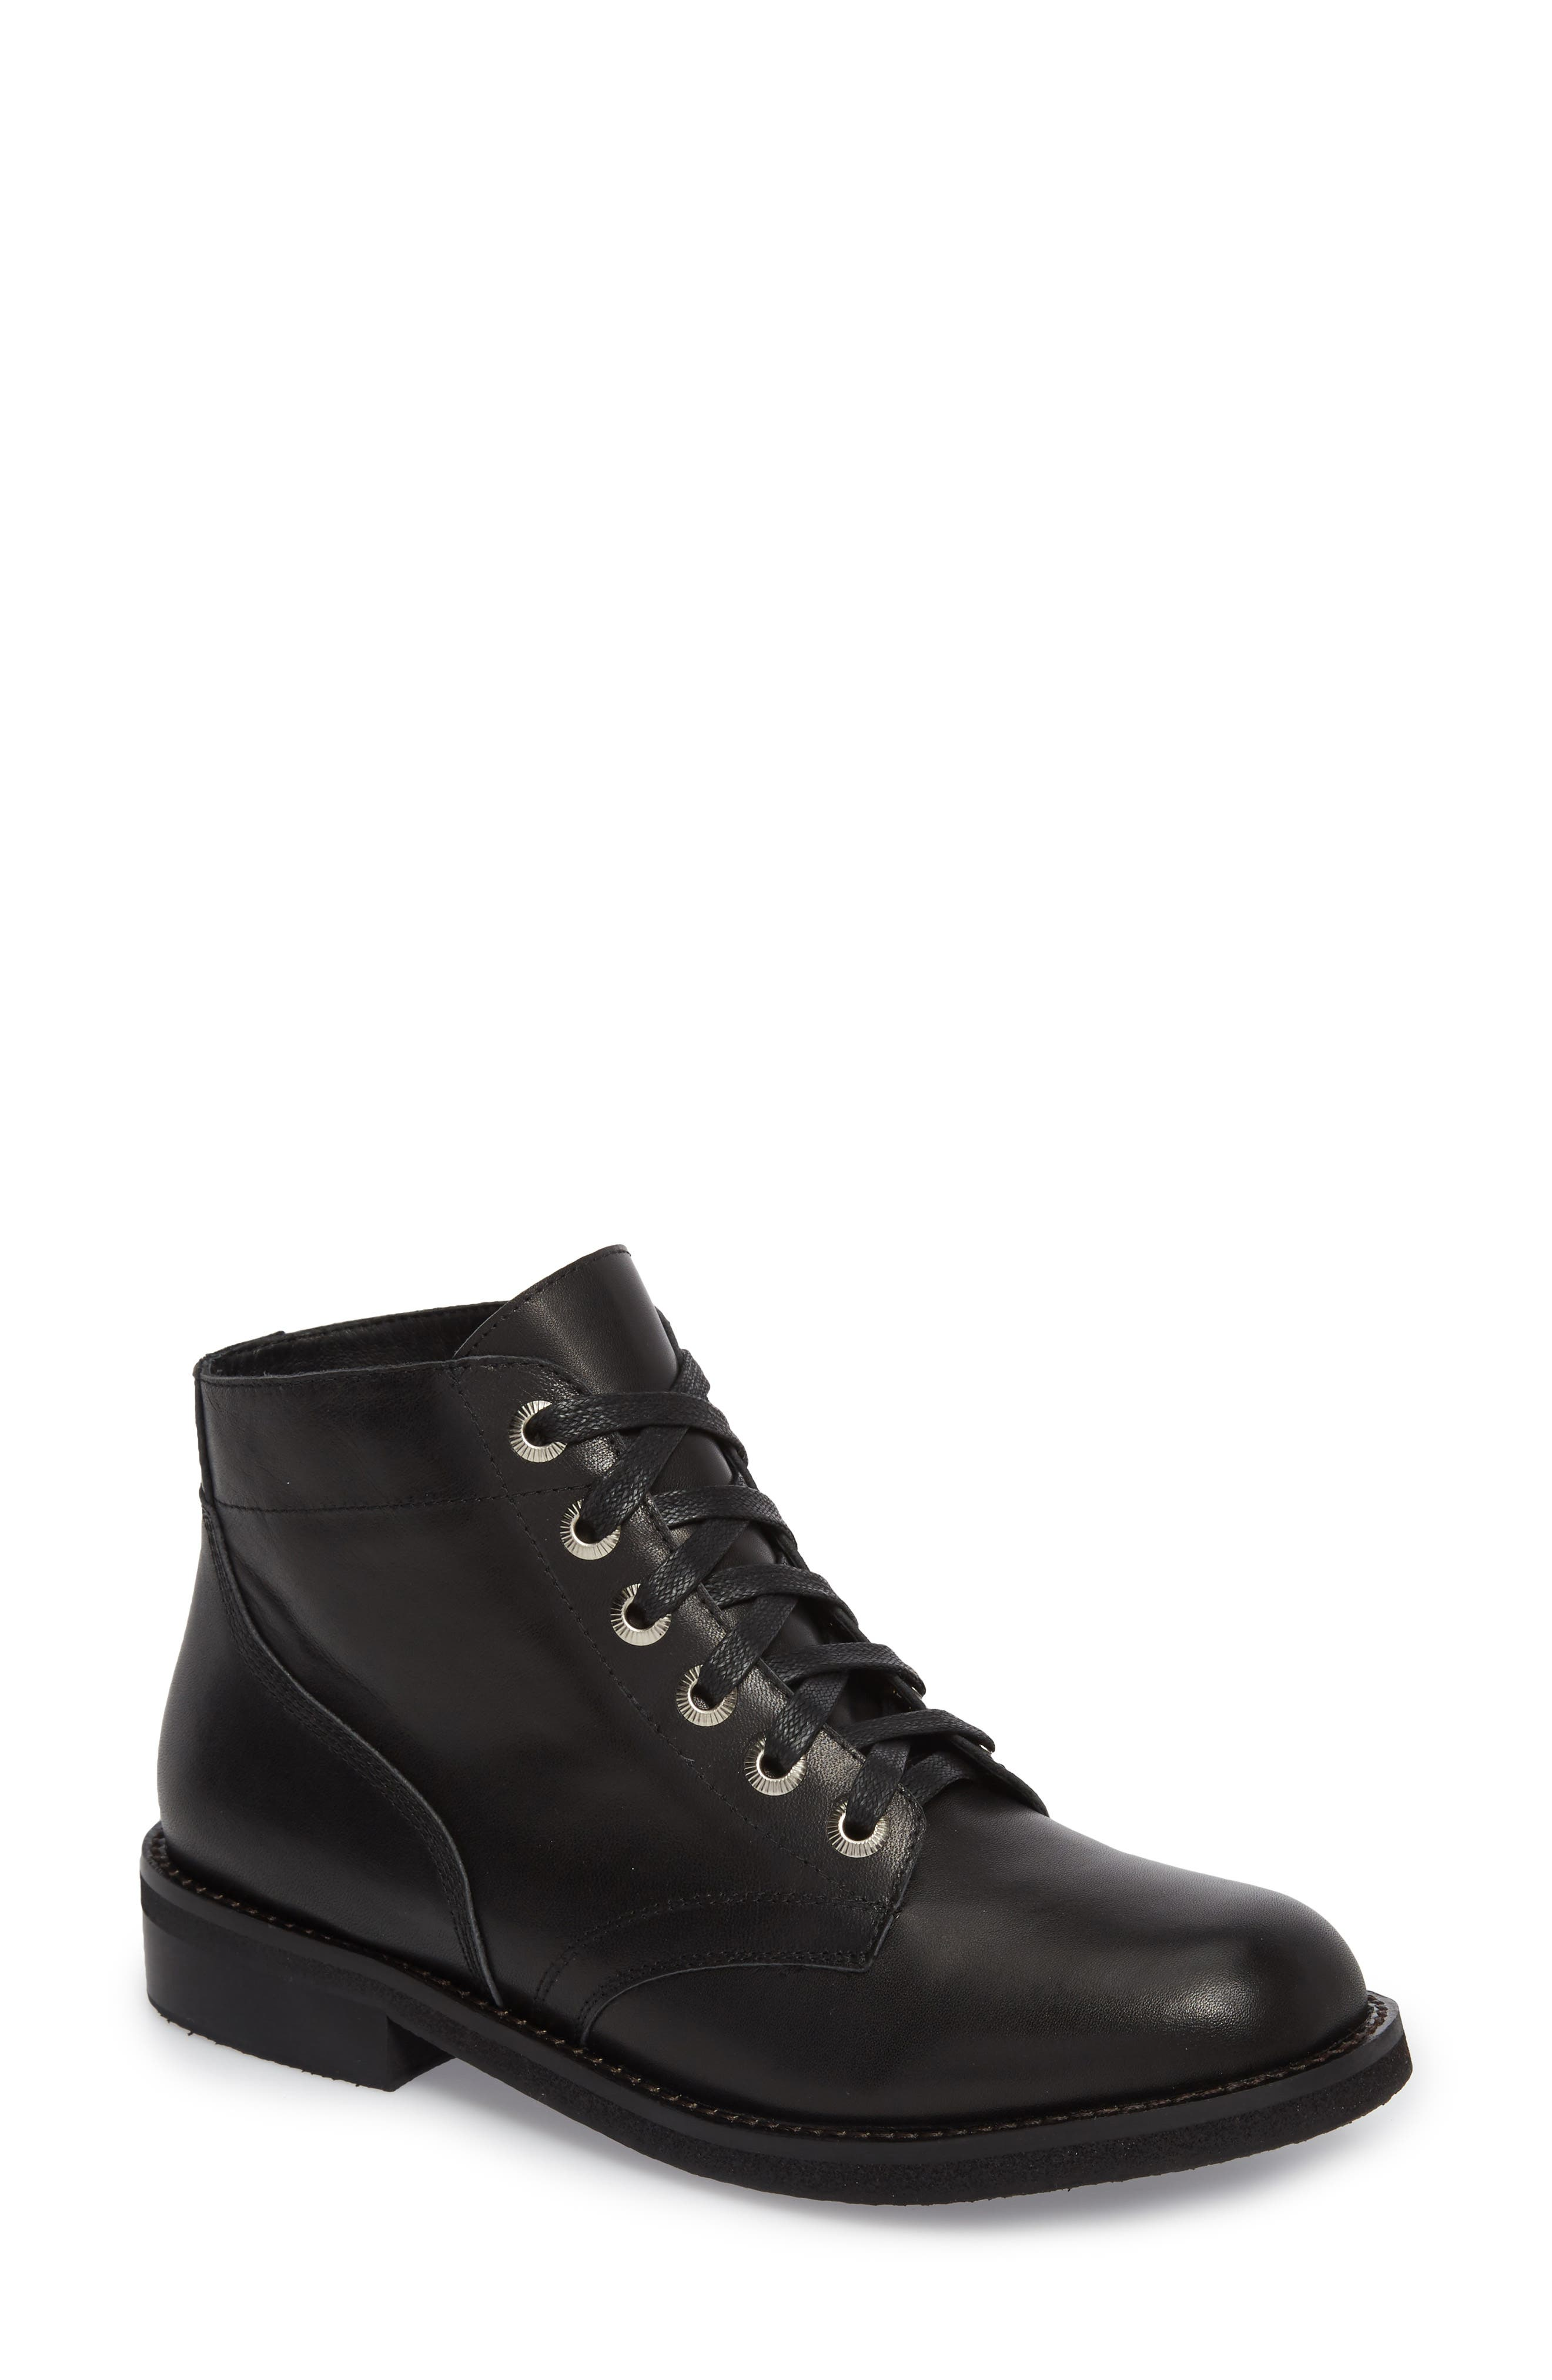 James Combat Boot,                         Main,                         color, Black Leather